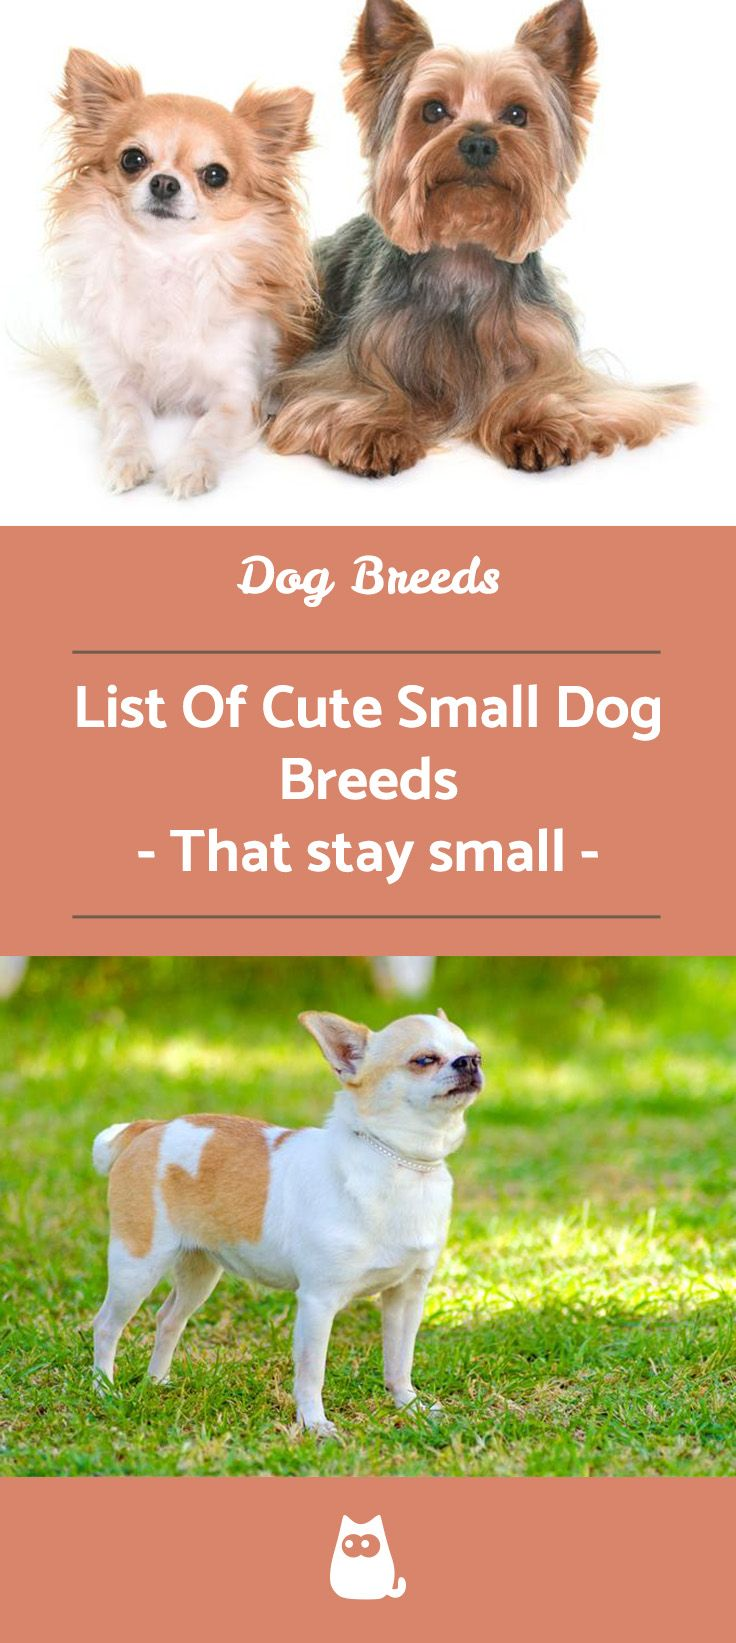 13 Small Dog Breeds List With Pictures With Images Cute Dogs Breeds Dog Breeds List Cutest Small Dog Breeds